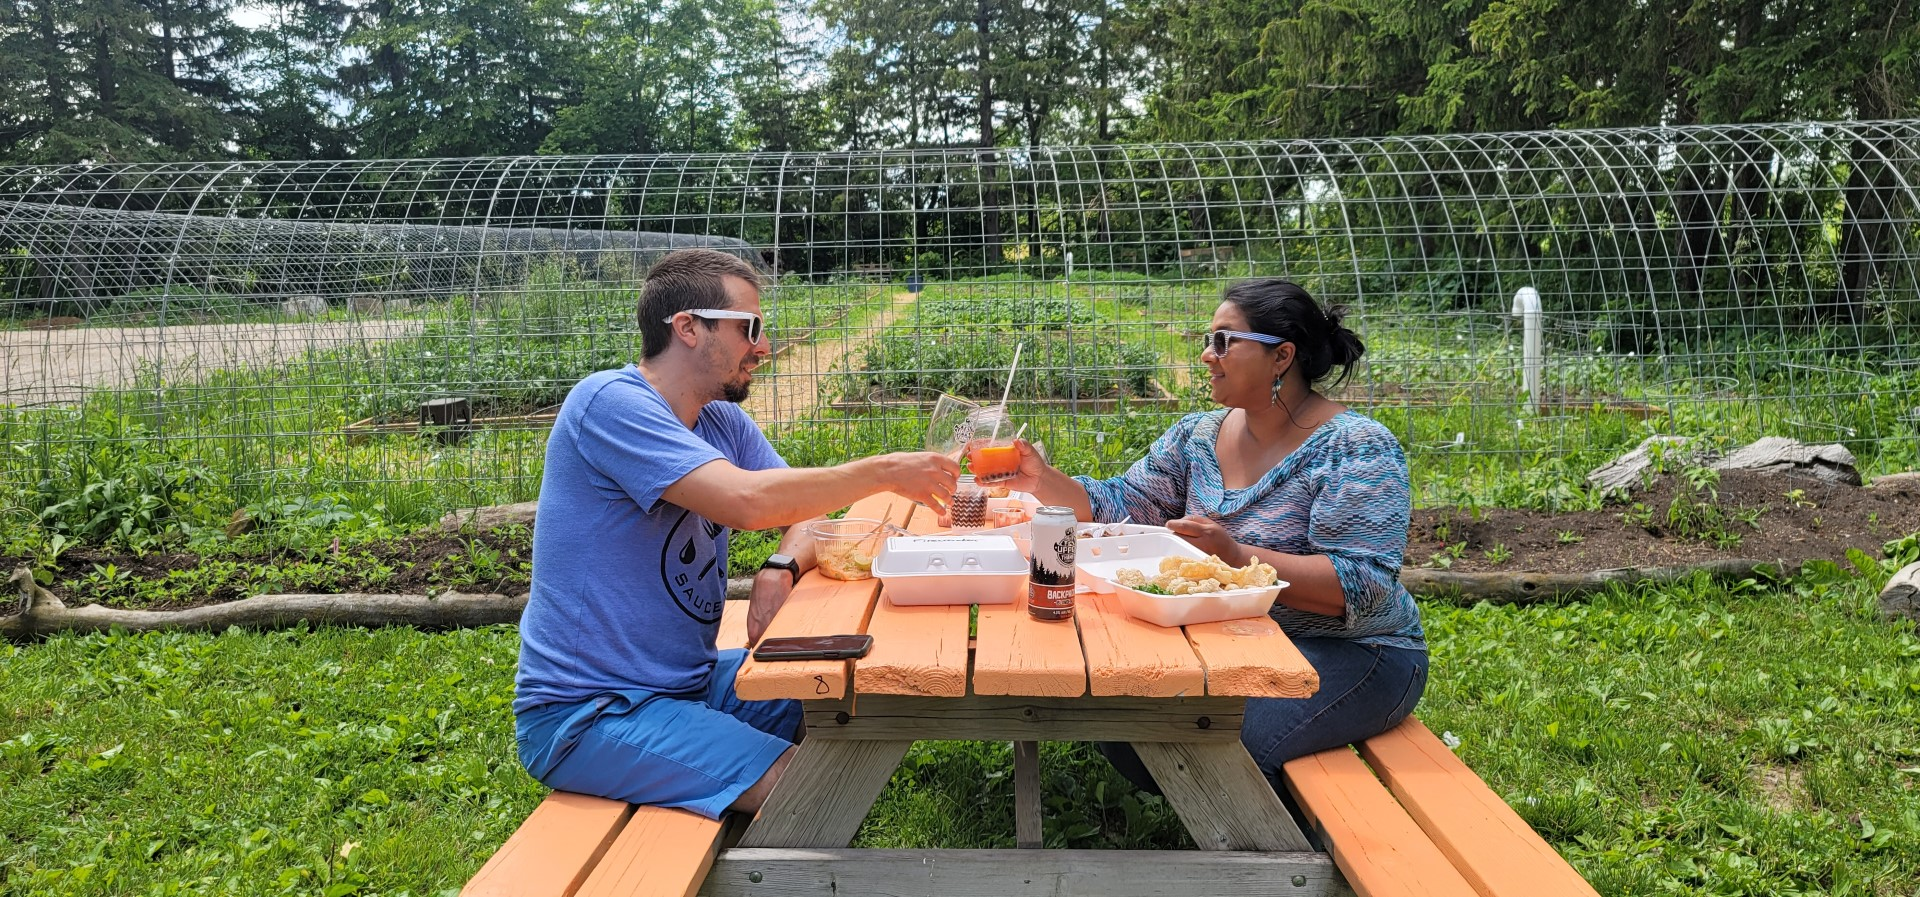 mixed couple enjoying lunch at picnic table